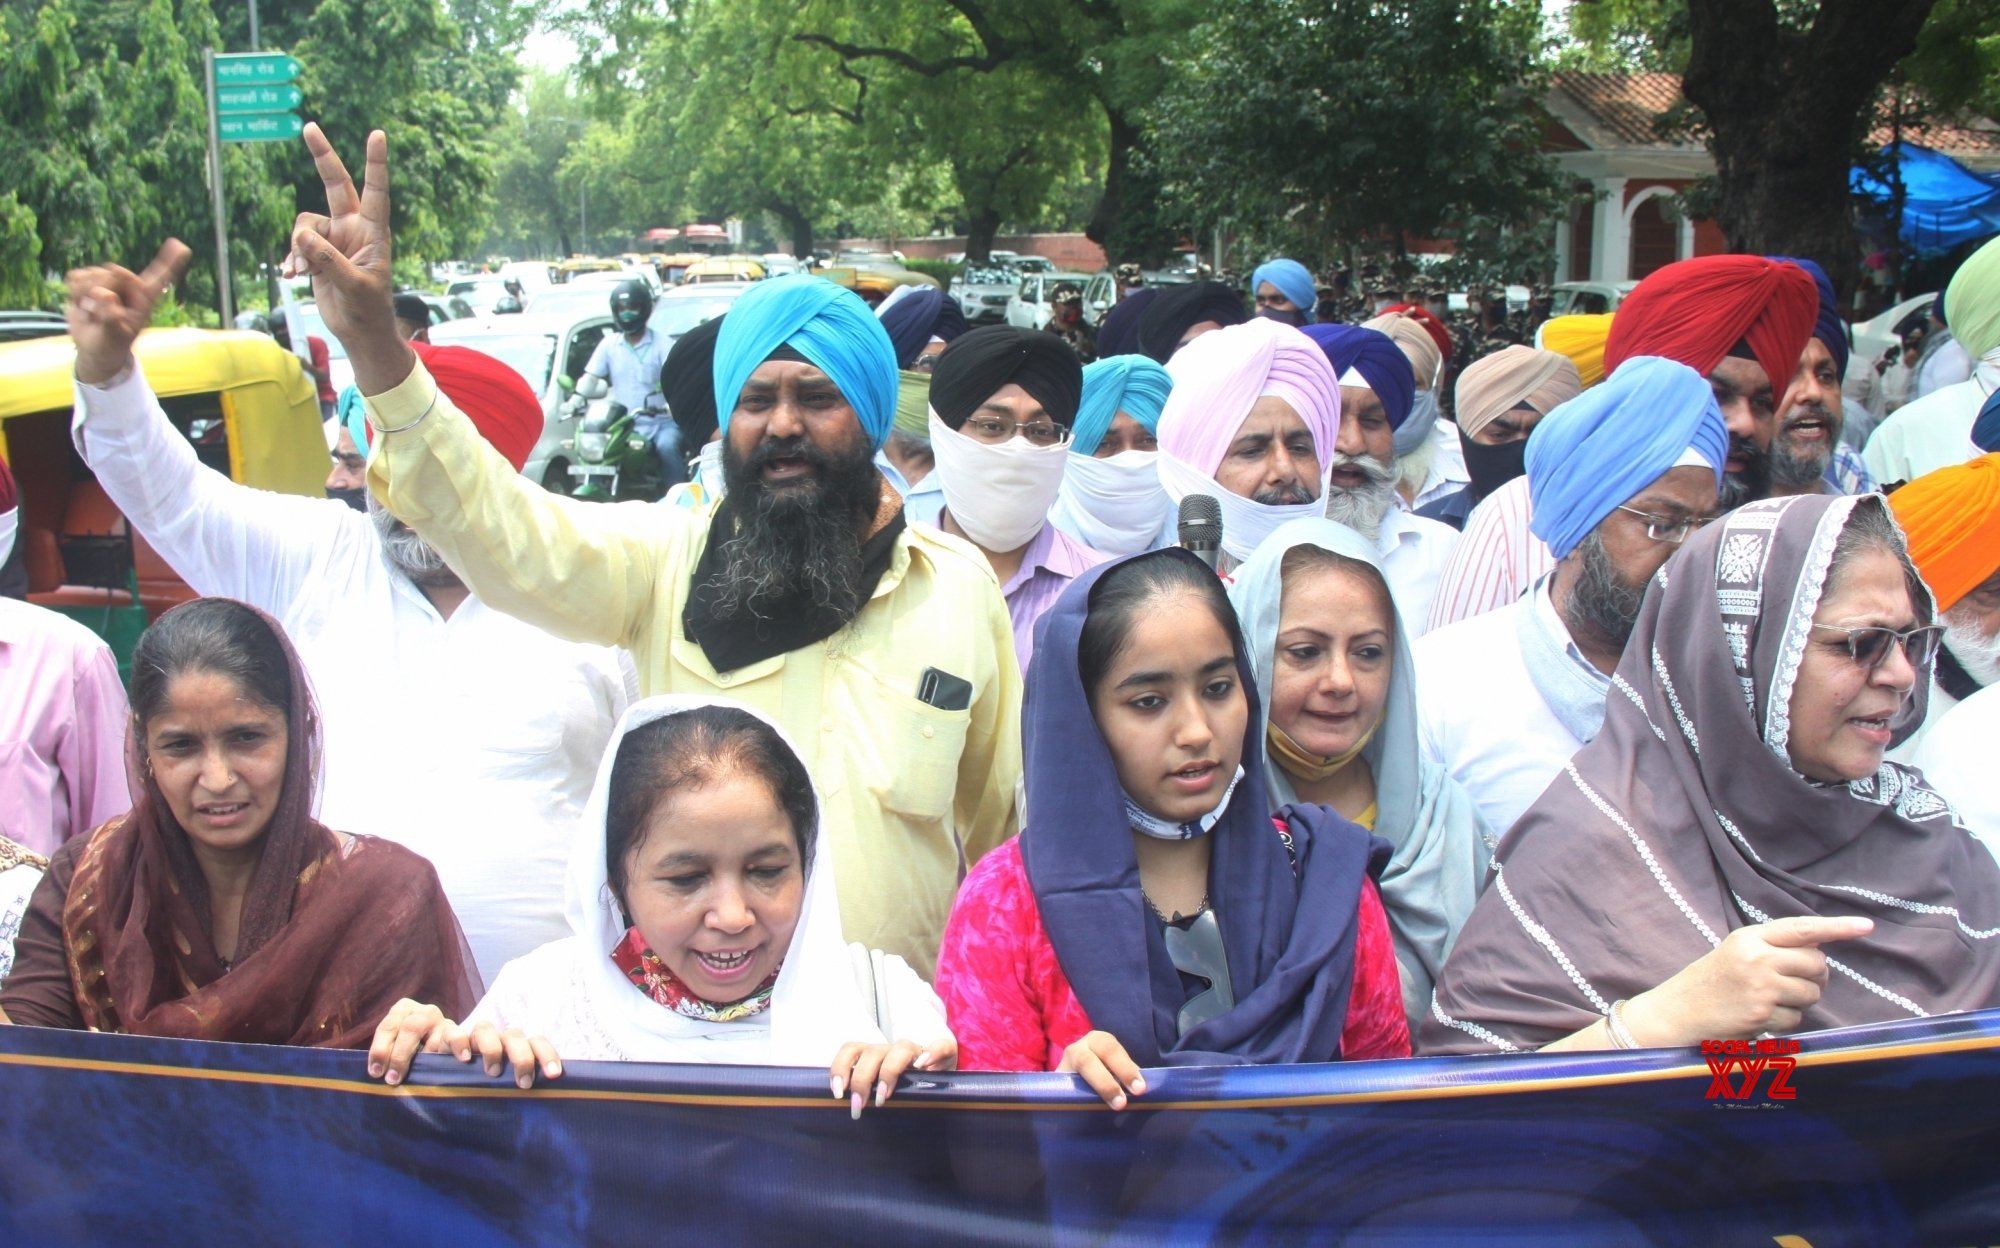 Why are Sikhs of Kashmir angry